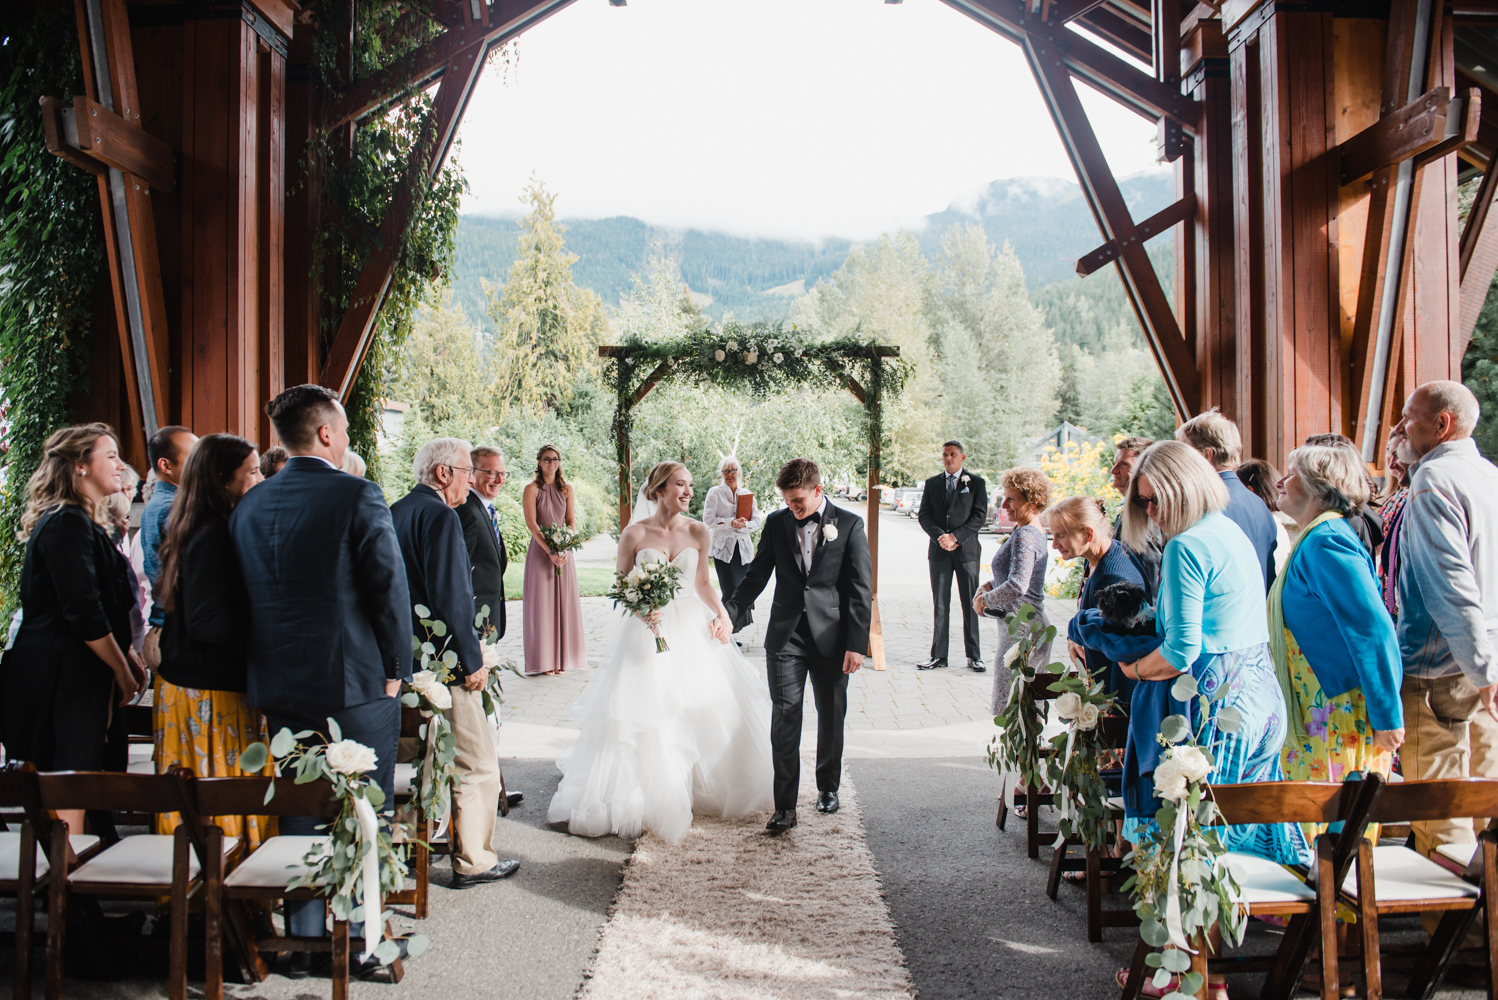 Nitalake wedding69.jpg